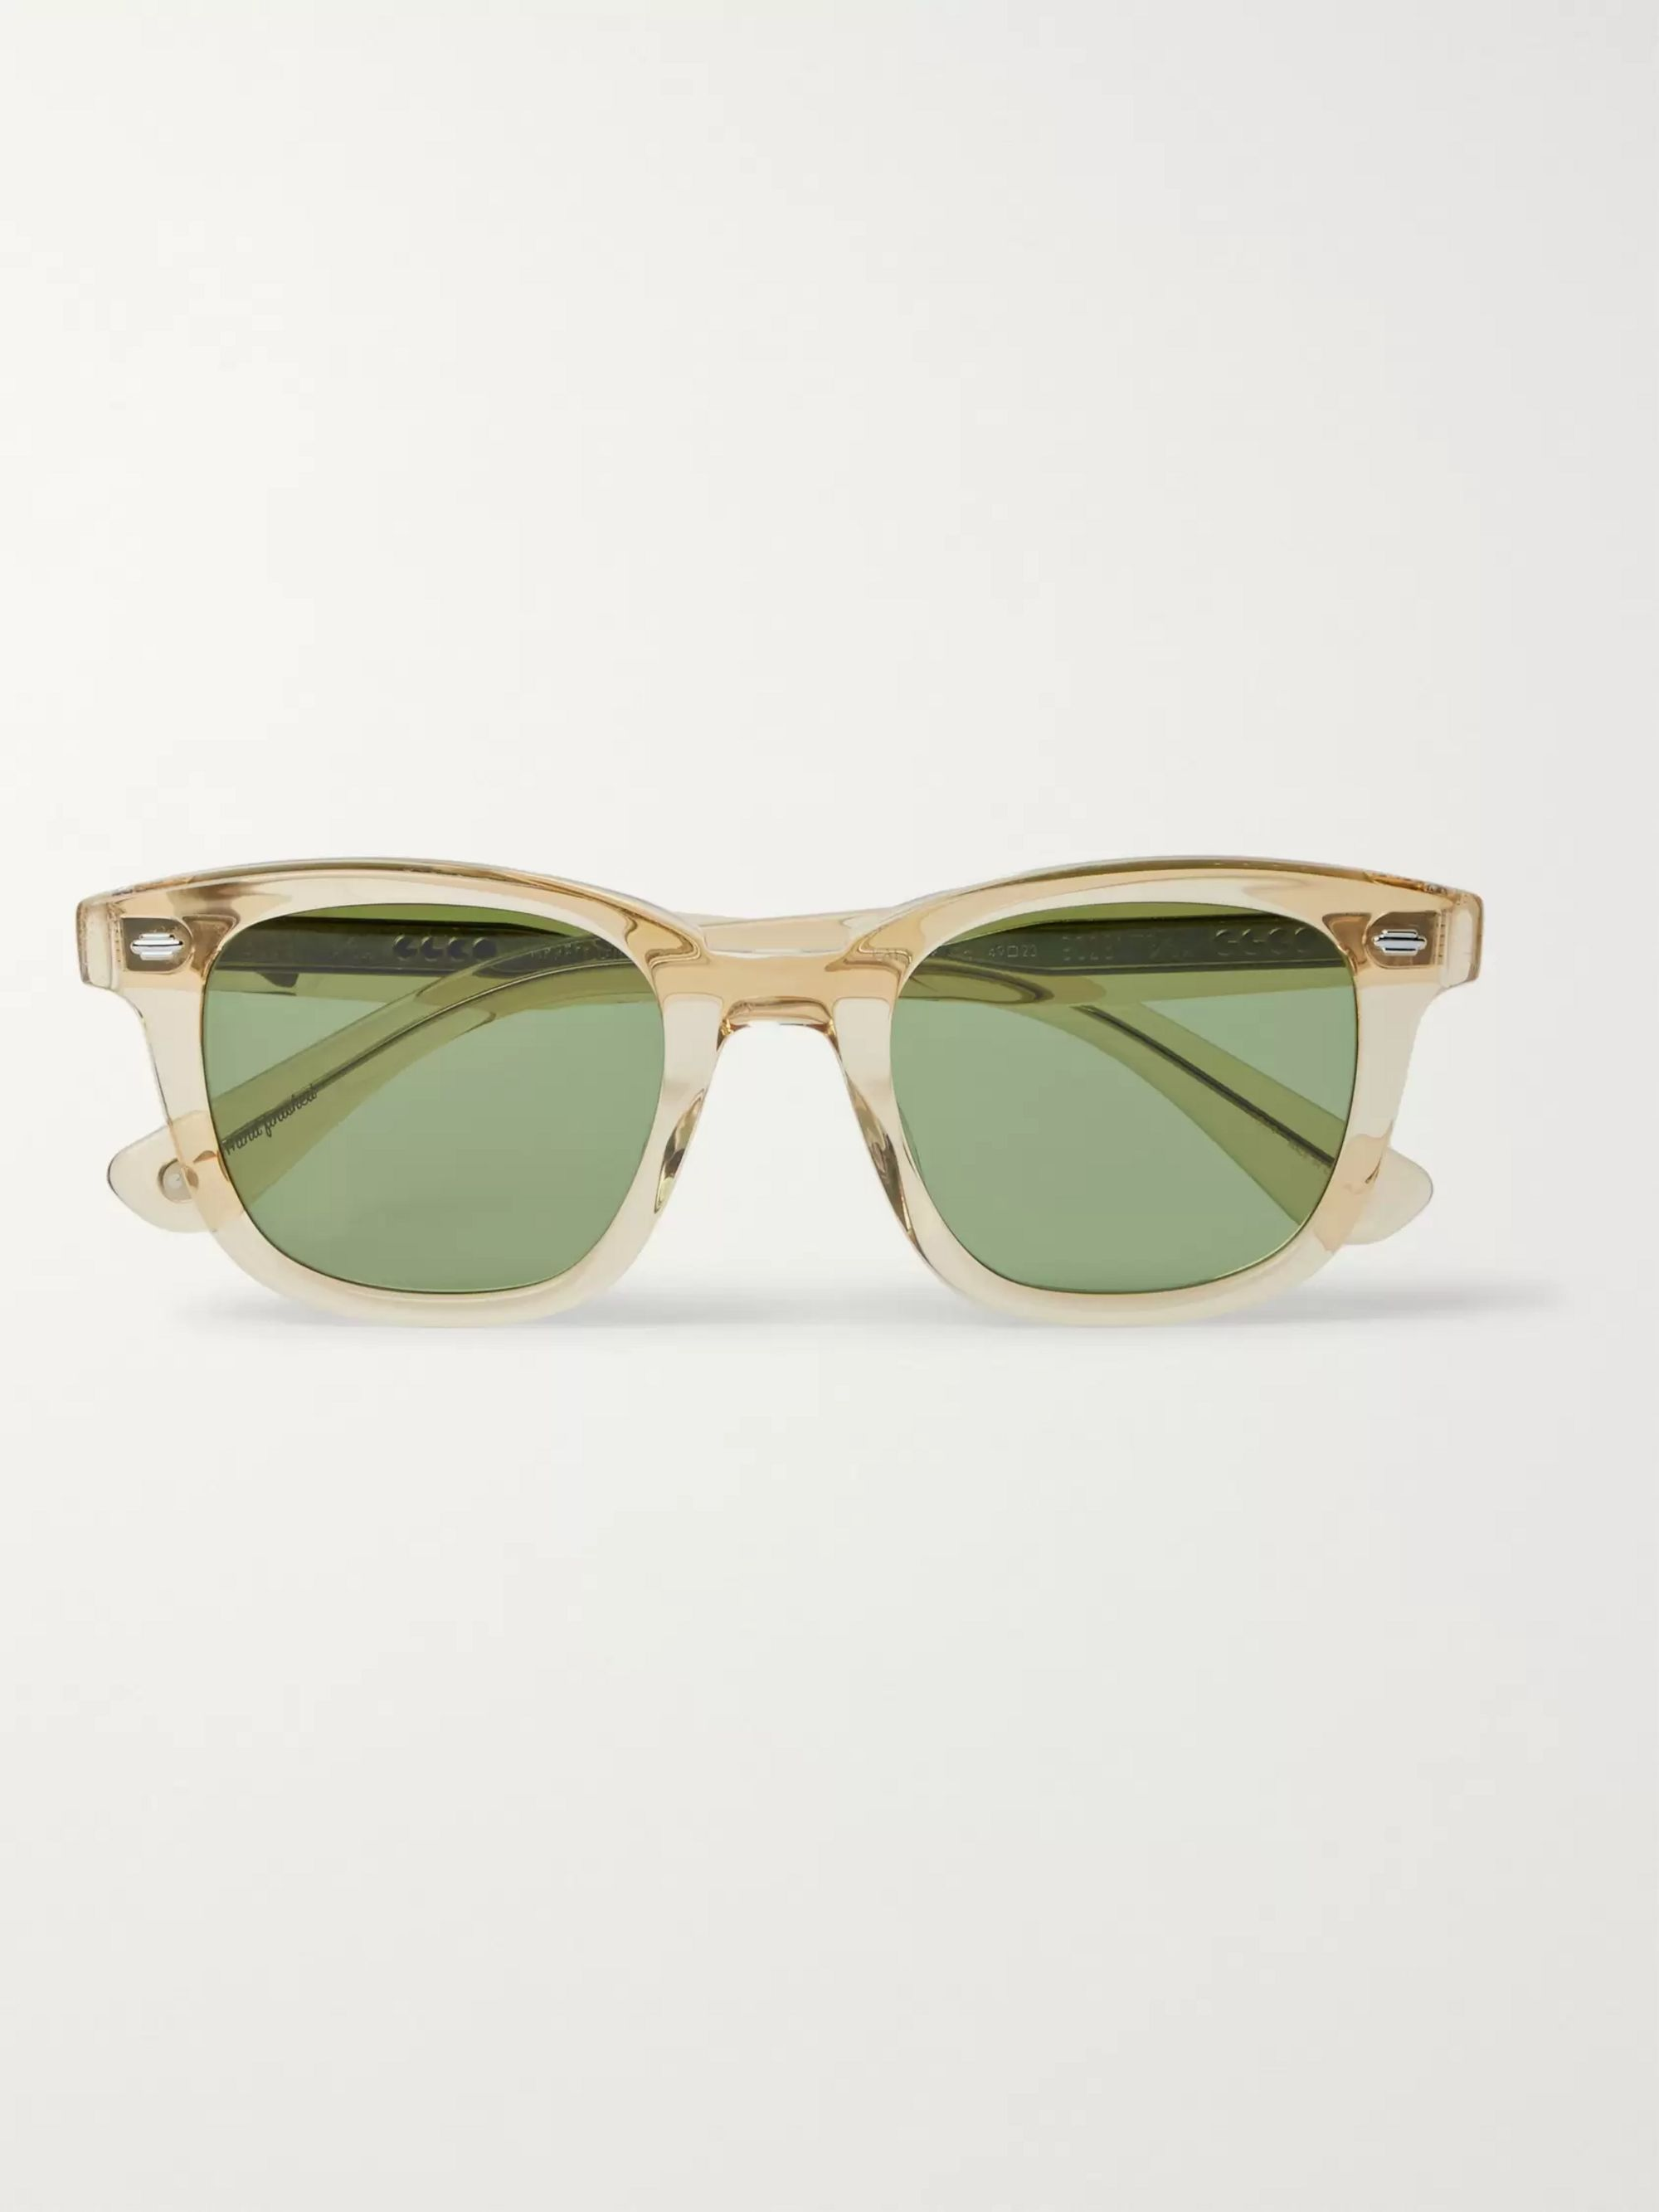 Garrett Leight California Optical Calabar 49 Square-Frame Acetate Sunglasses